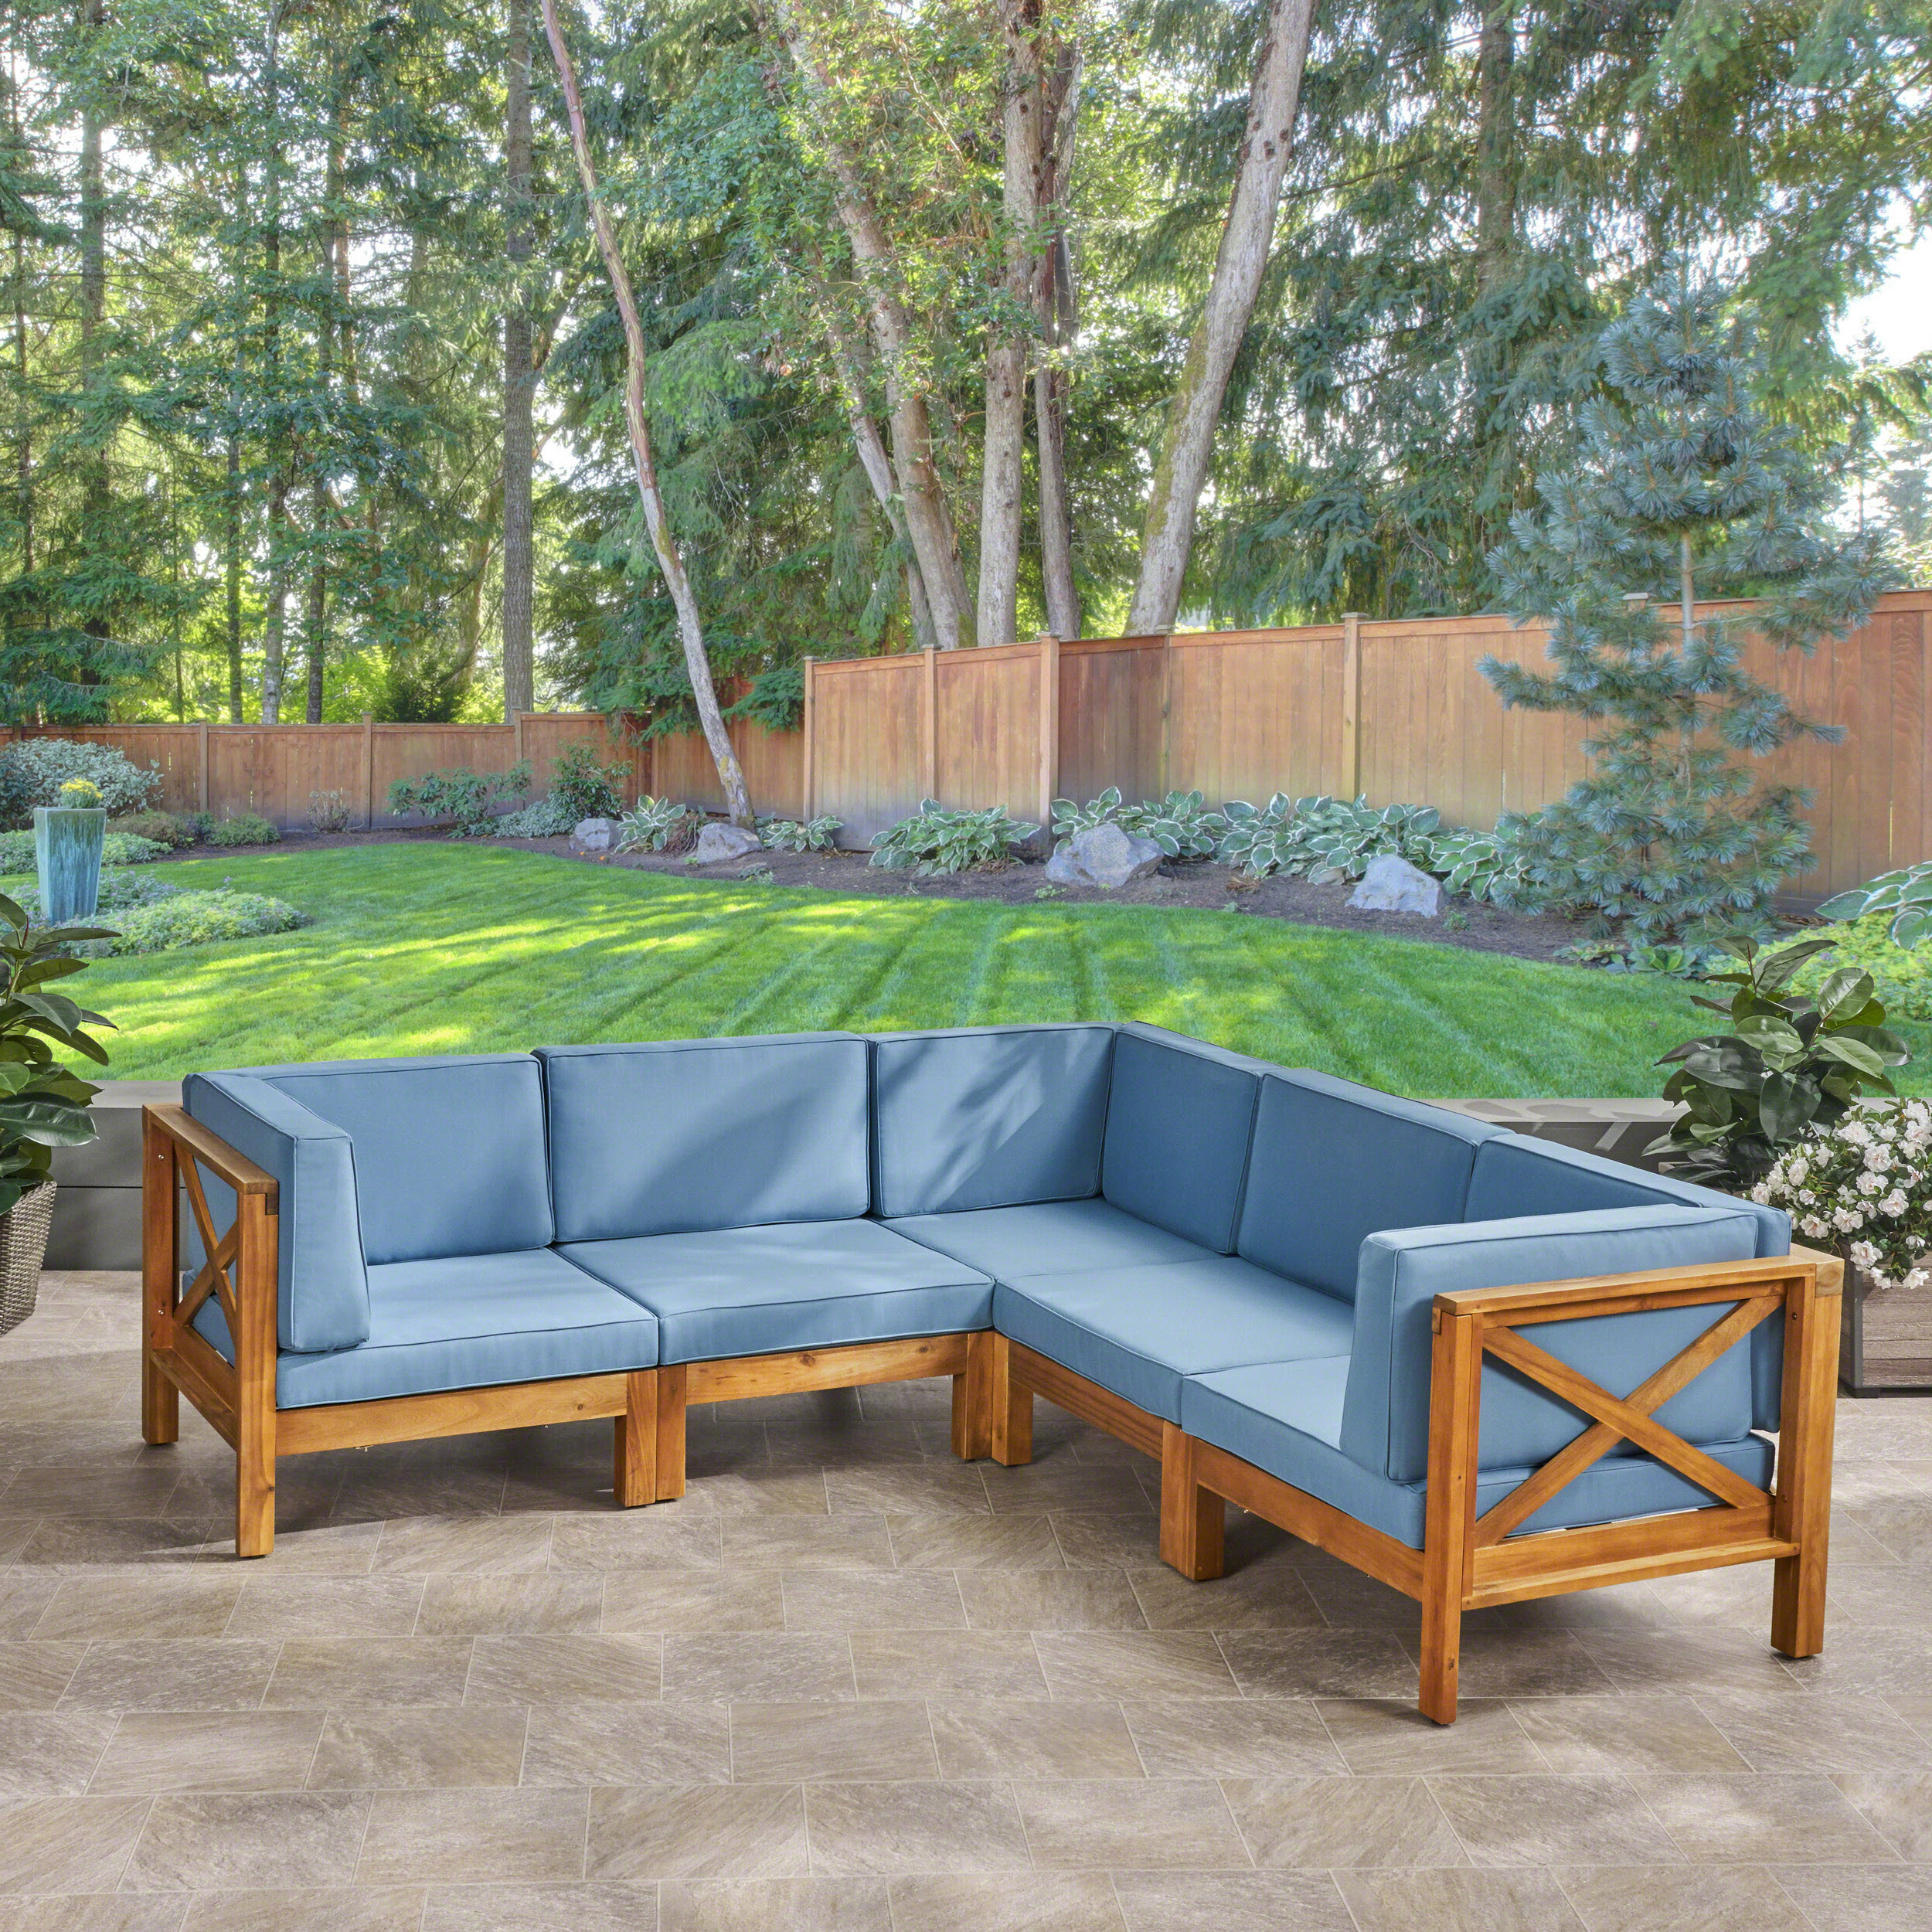 2020 Ostrowski Patio Sectionals With Cushions With Regard To Highland Dunes Ellison Patio Sectional With Cushions (View 3 of 25)